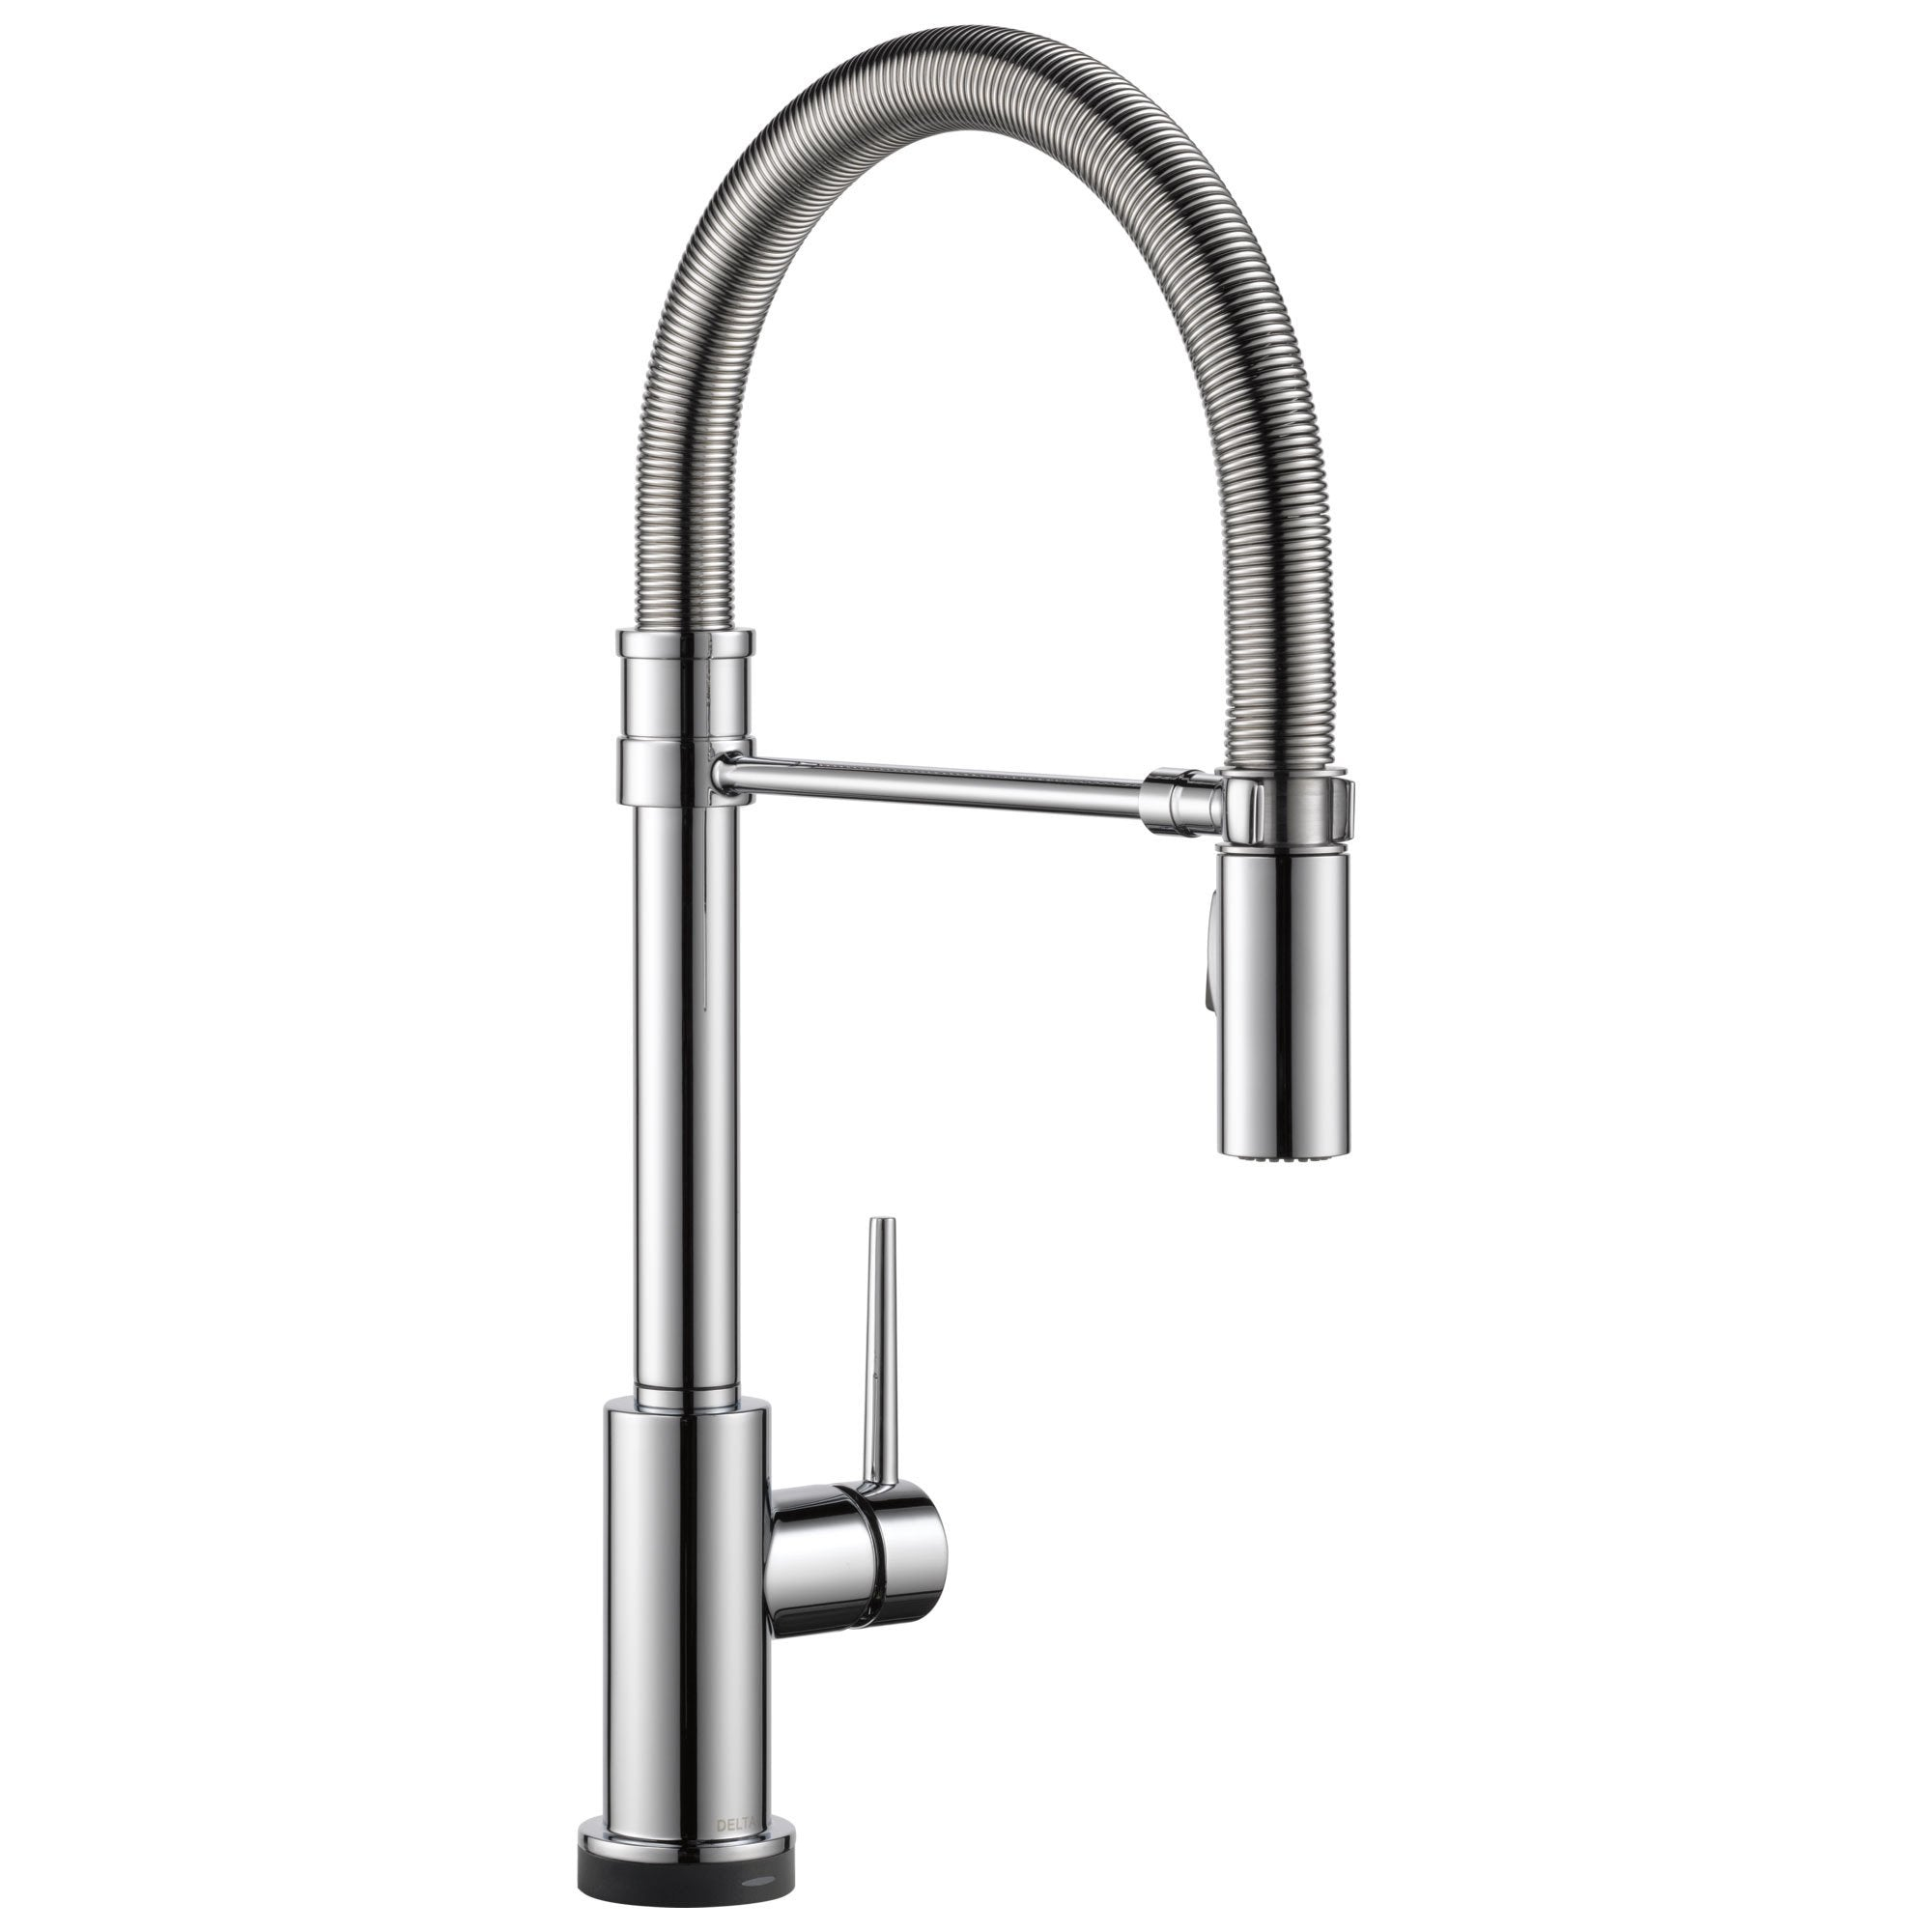 Delta Trinsic Collection Chrome Finish Single Handle Pull-Down Spring Spout Electronic Kitchen Sink Faucet with Touch2O Technology 739277